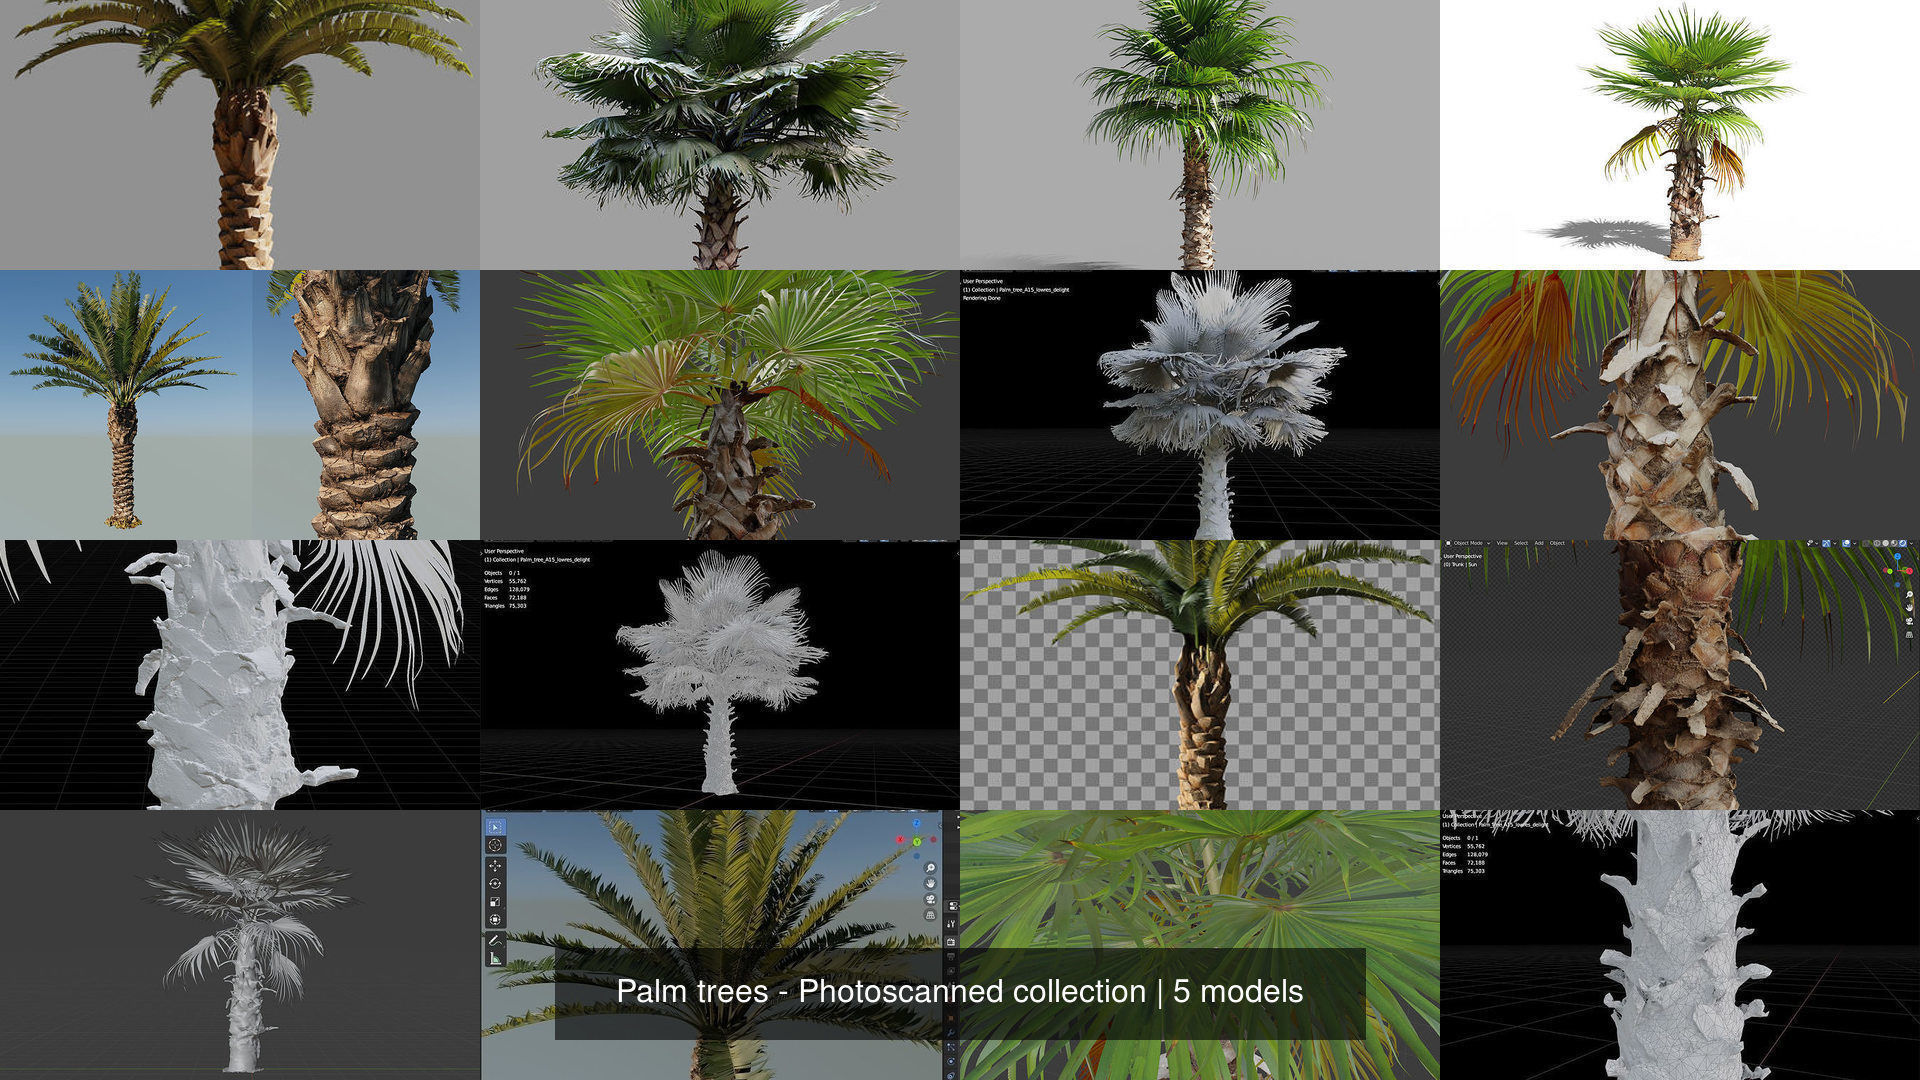 Palm trees - Photoscanned collection